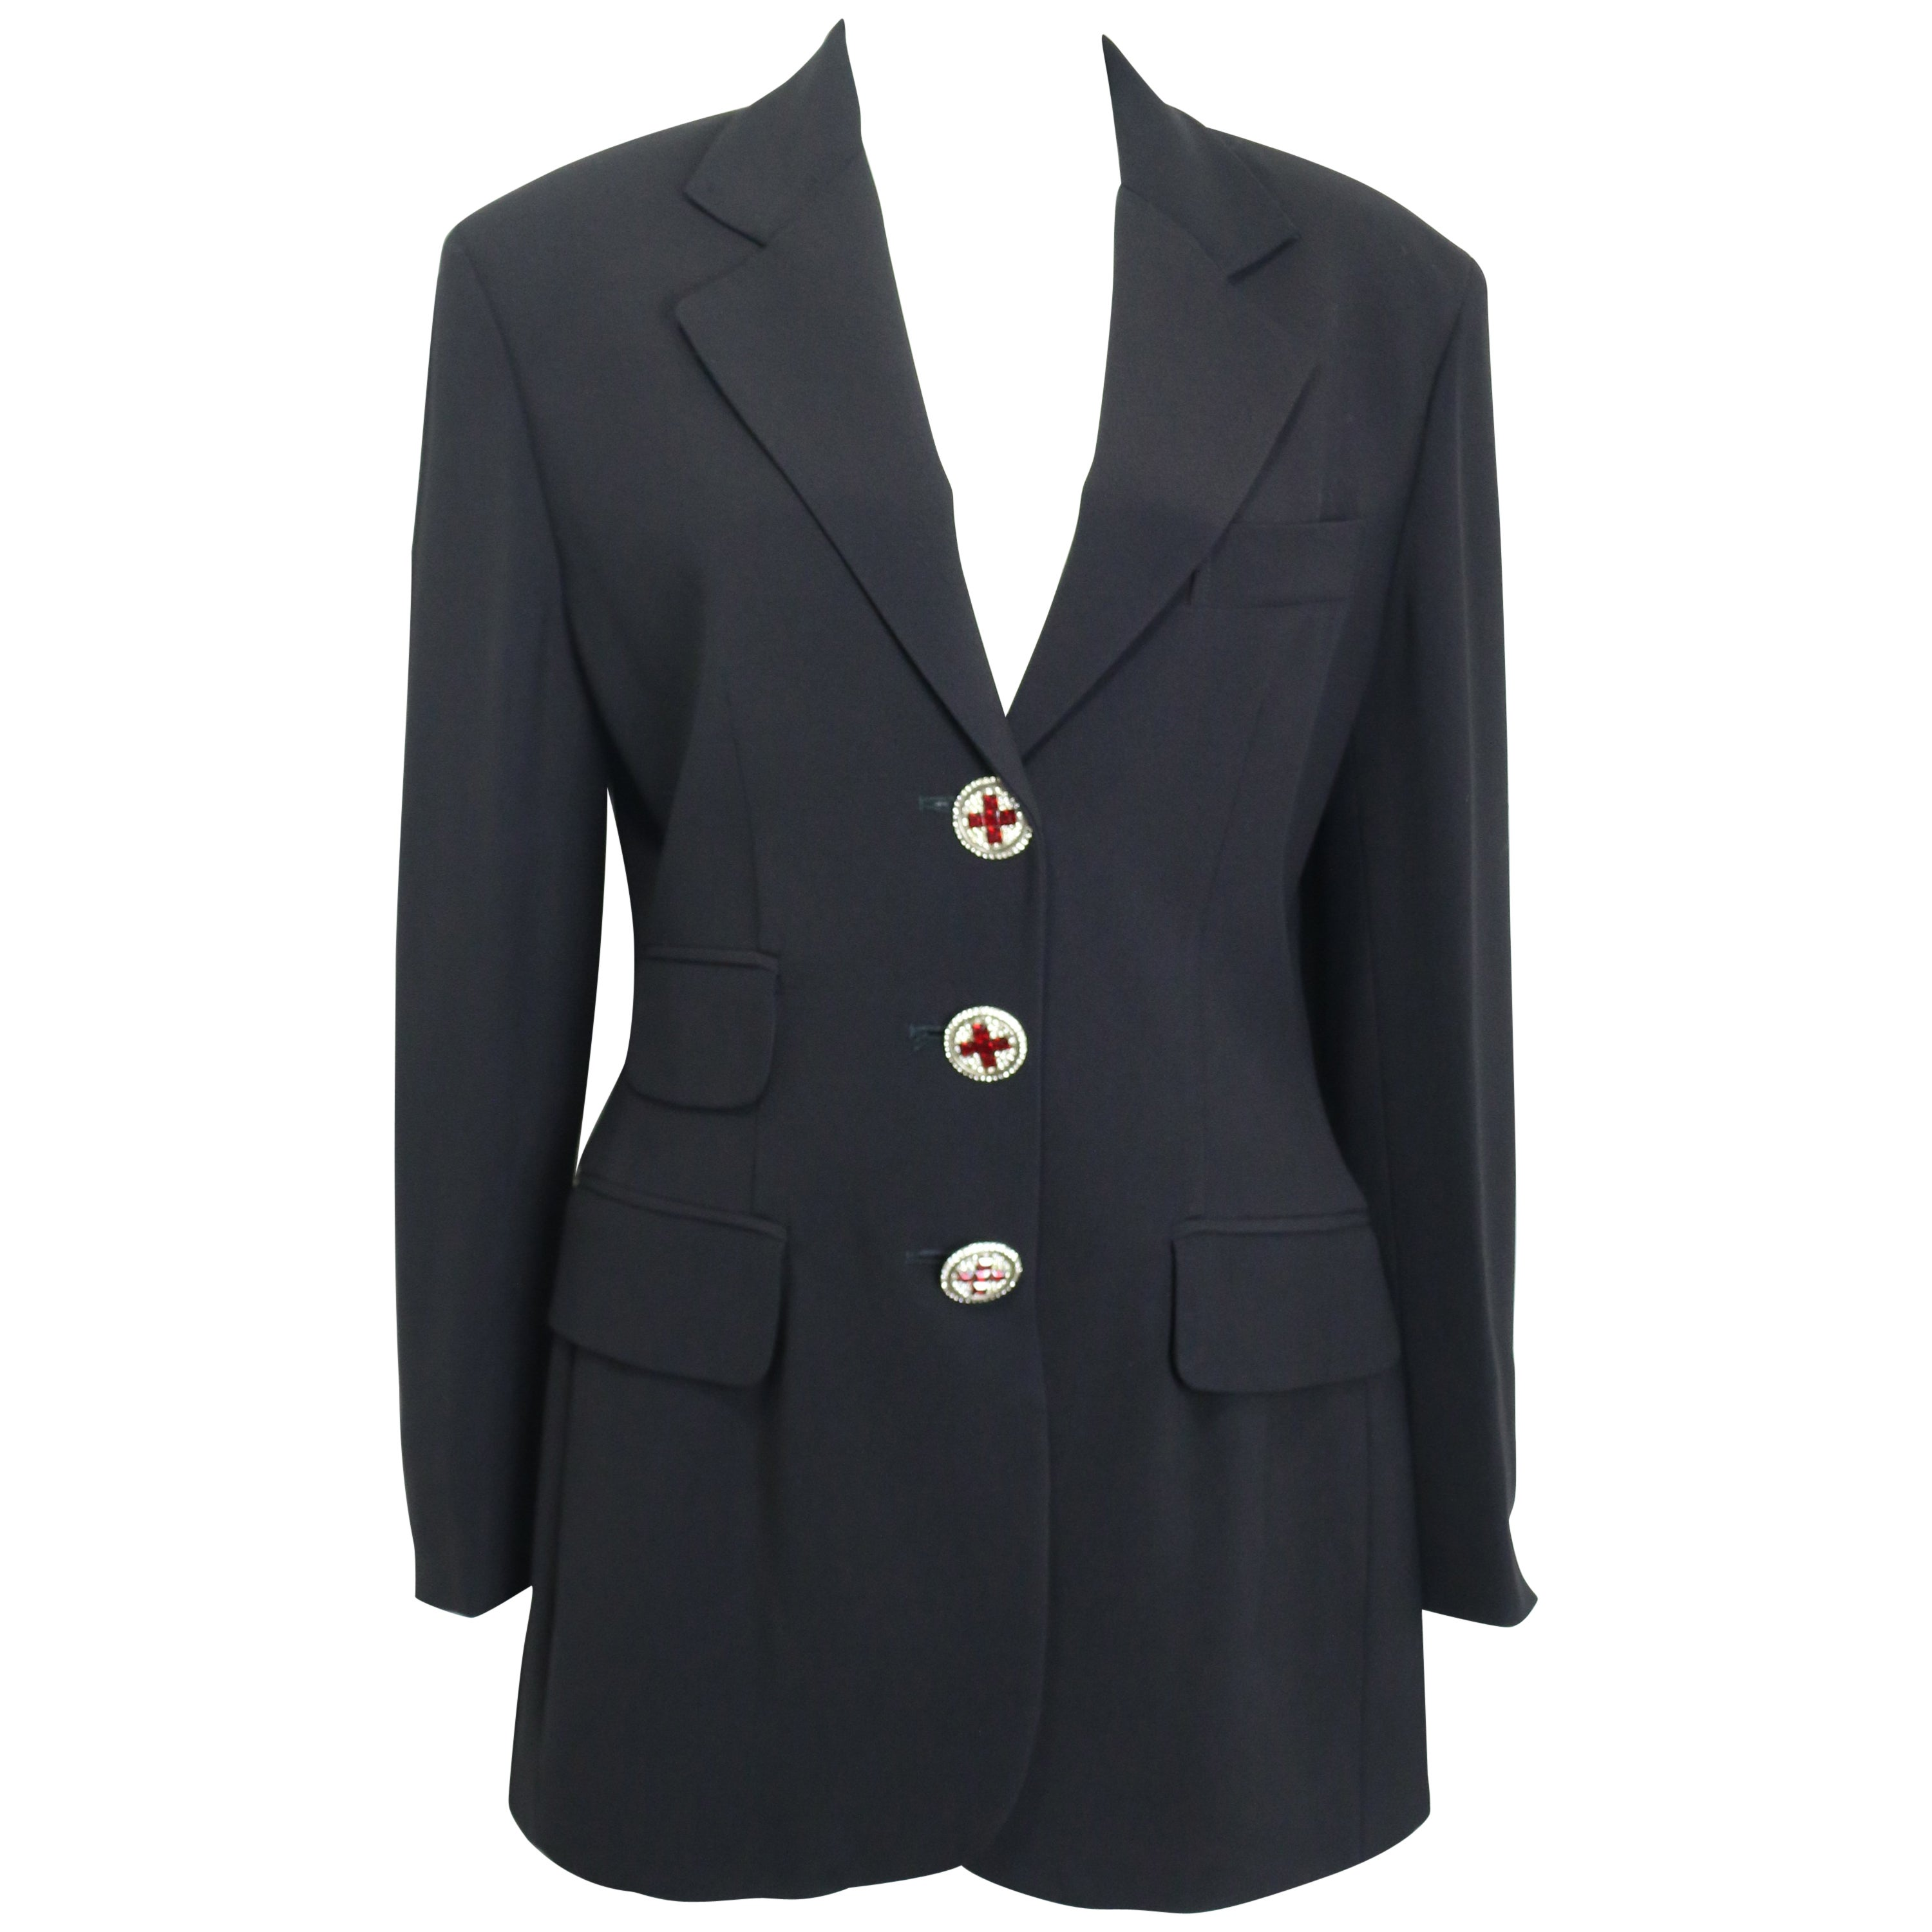 Moschino Couture Black Blazer with Red Cross Crystal Rhinestones buttons